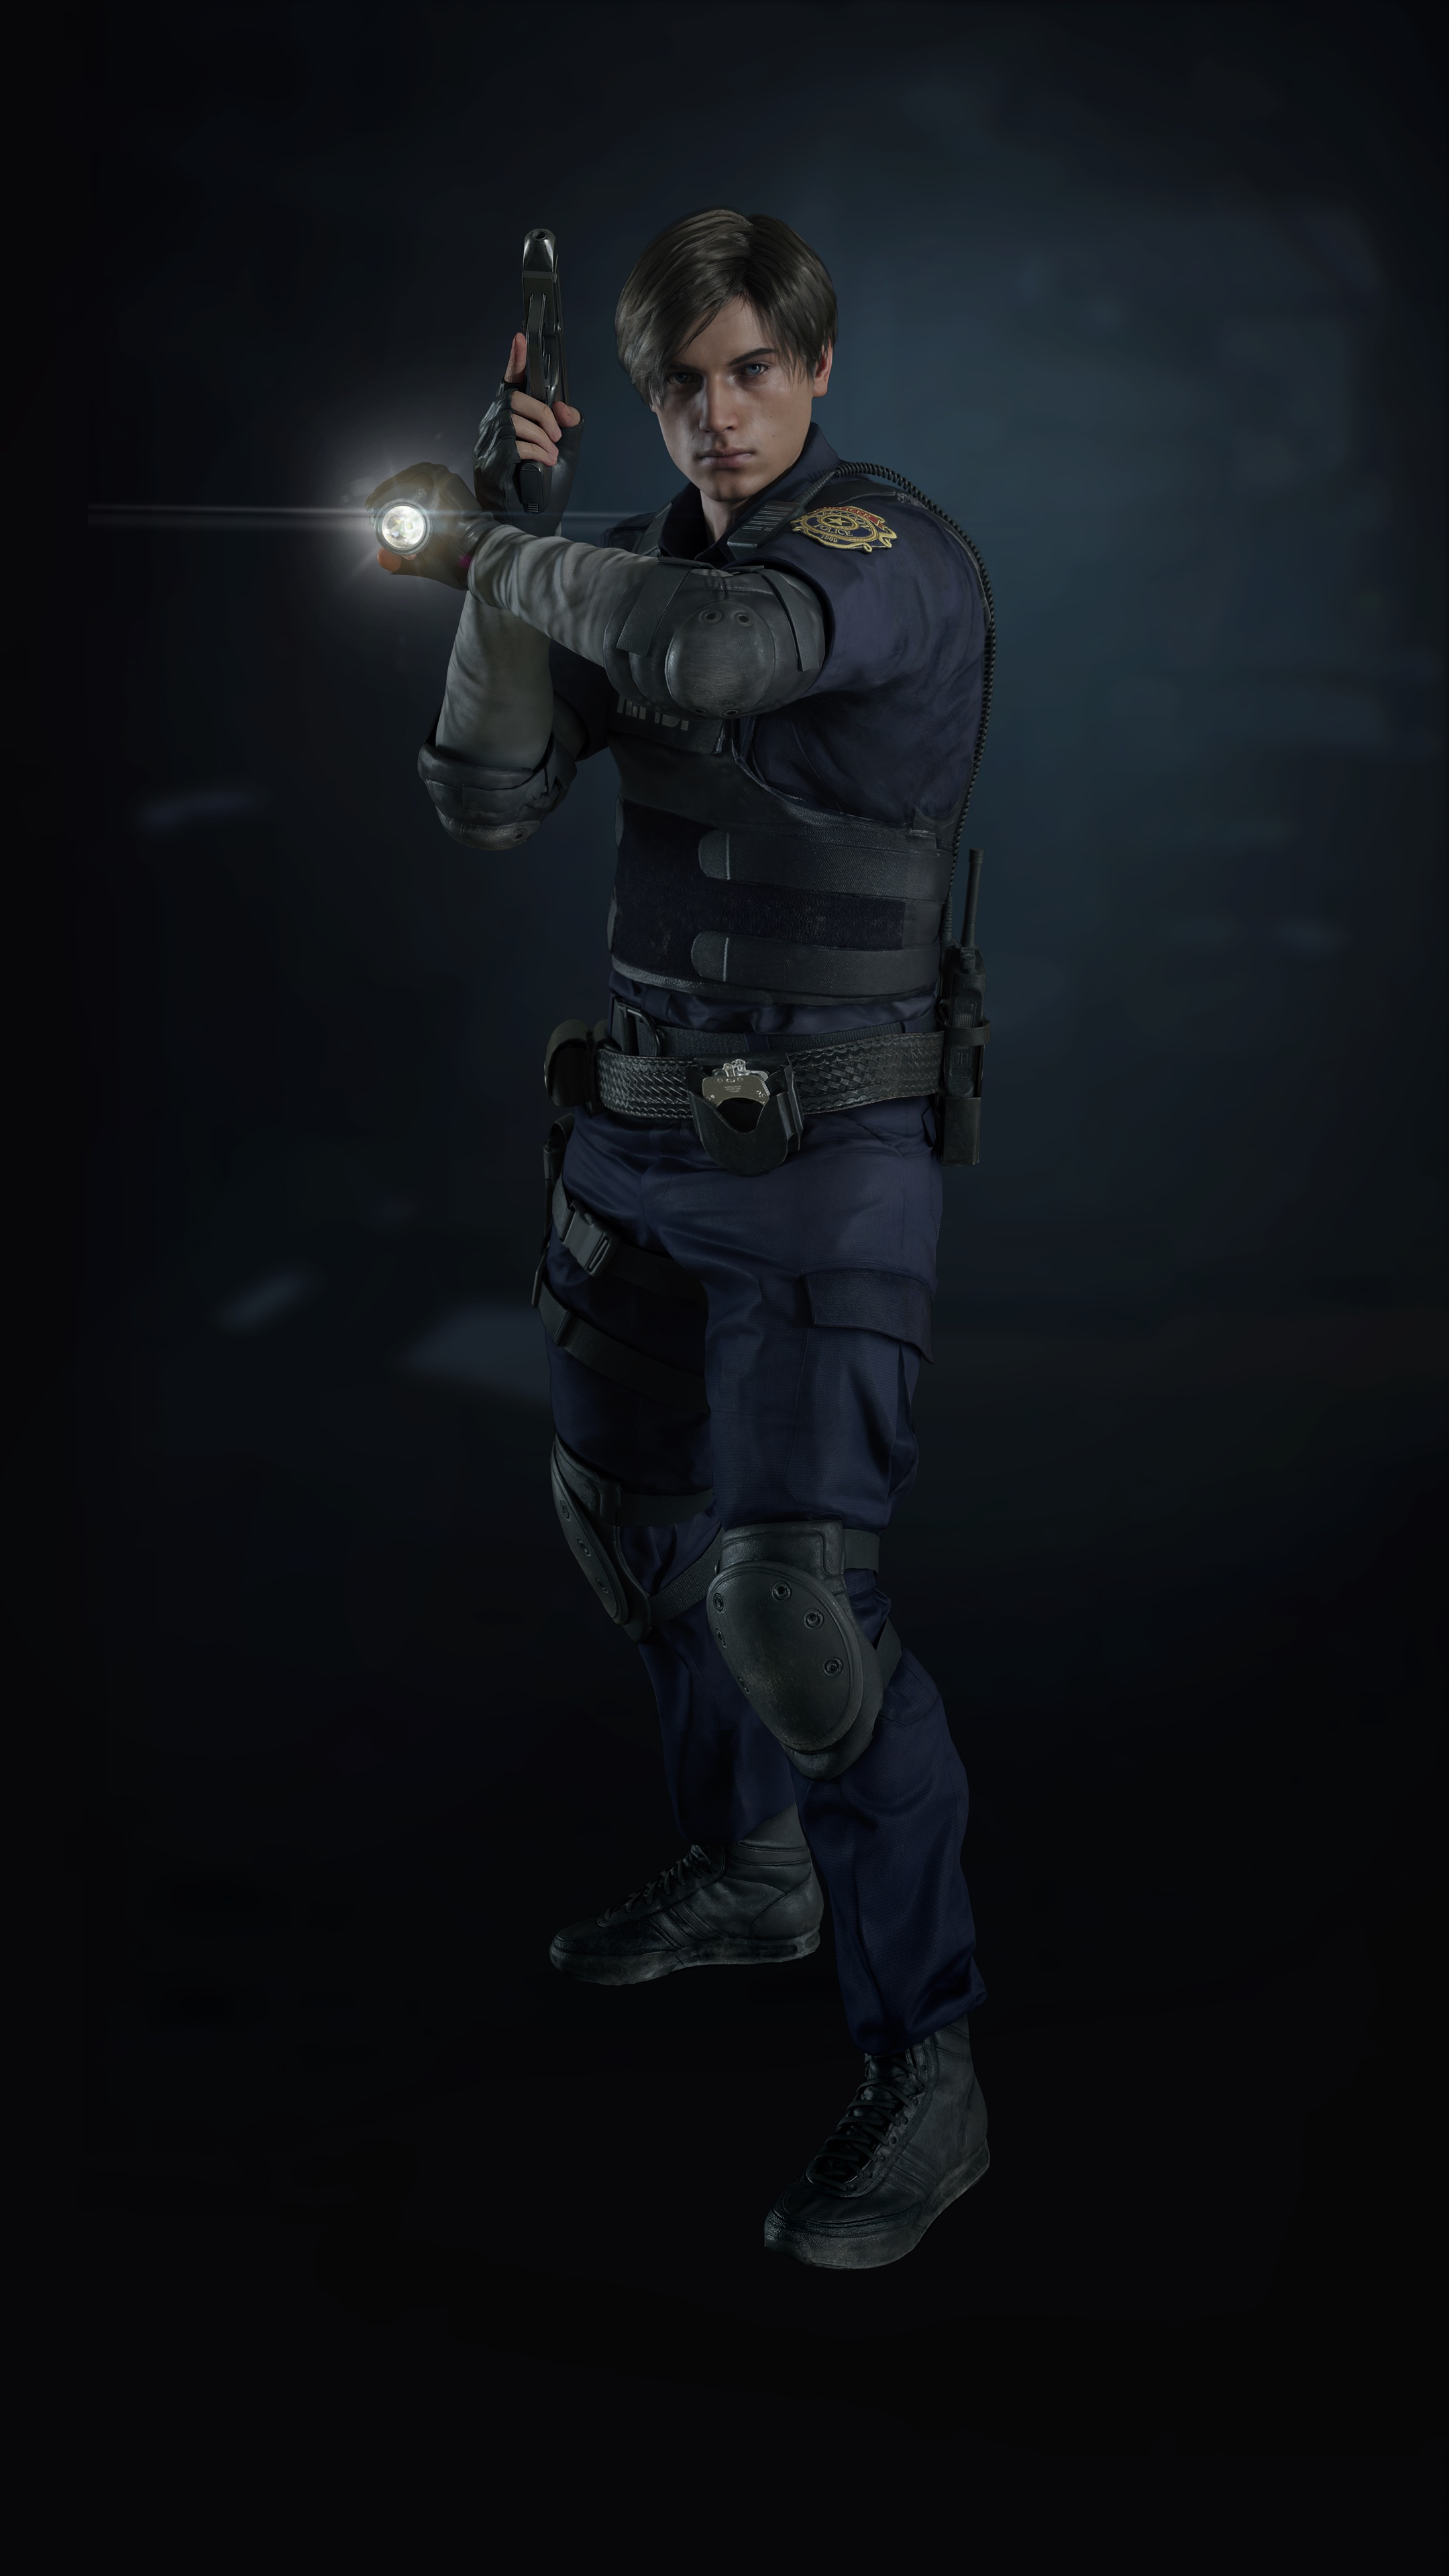 Resident Evil 2 Remake Leon S Kennedy By Xgamergreaserx On Deviantart